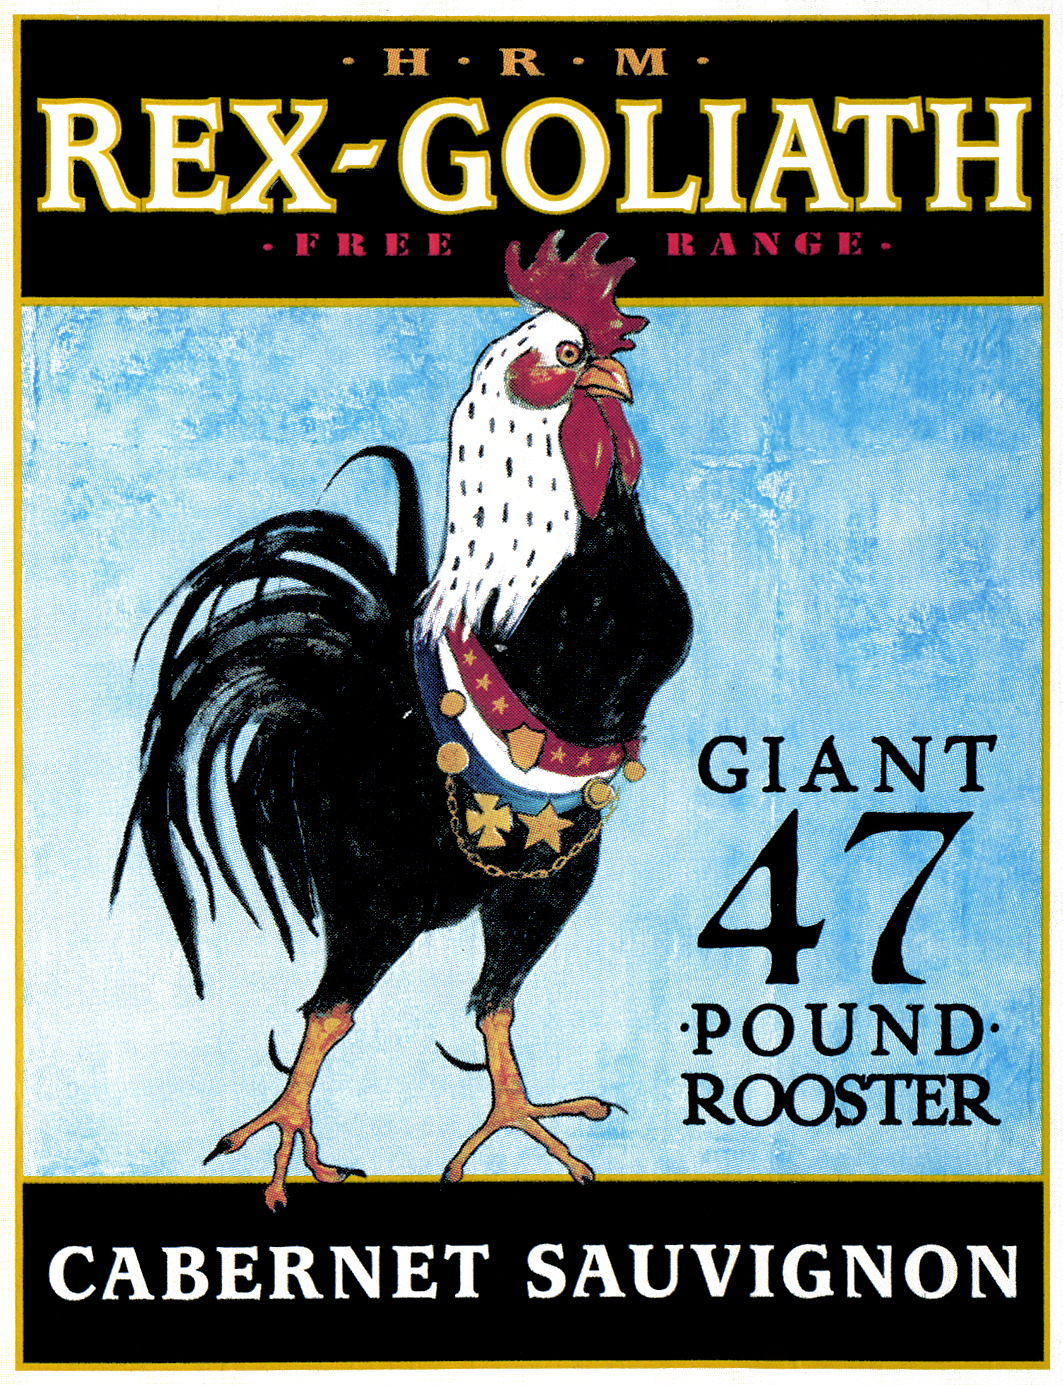 A 47 pound cock joke is too easy, so we submit this label without comment.